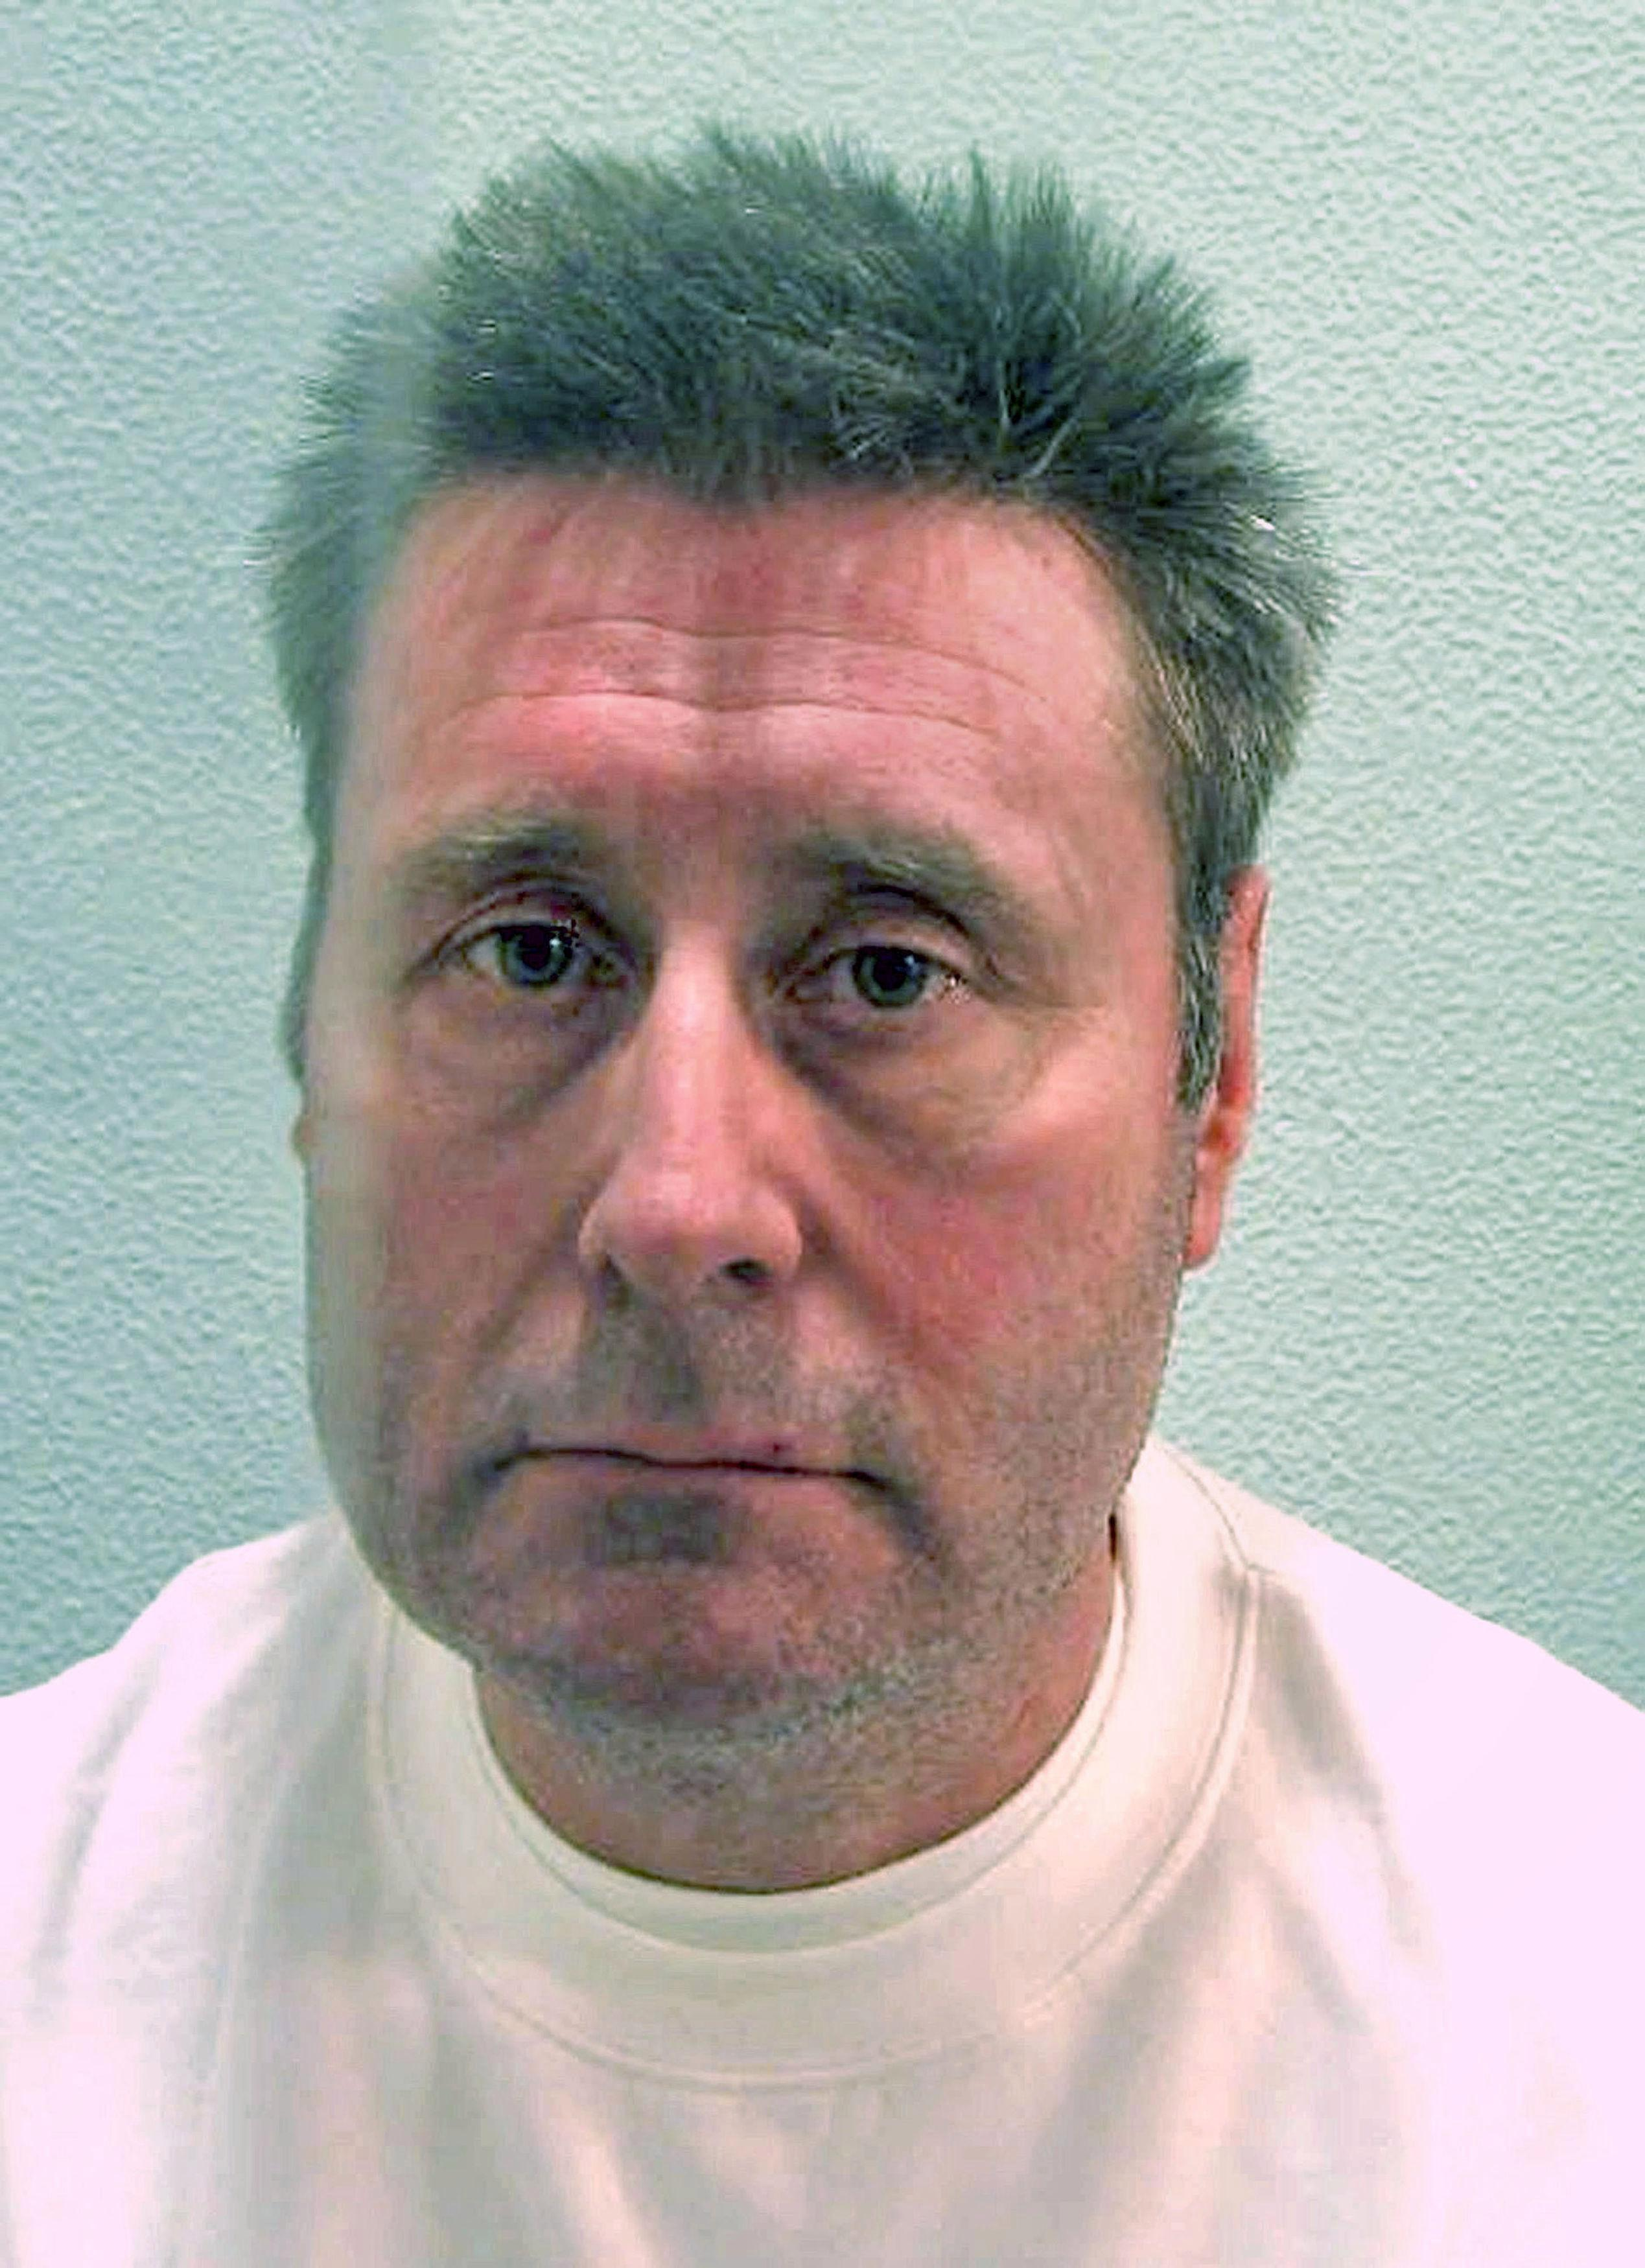 Taxi rapist John Worboys tells fellow lags he 'needs to be chemically castrated and is still a danger to women'